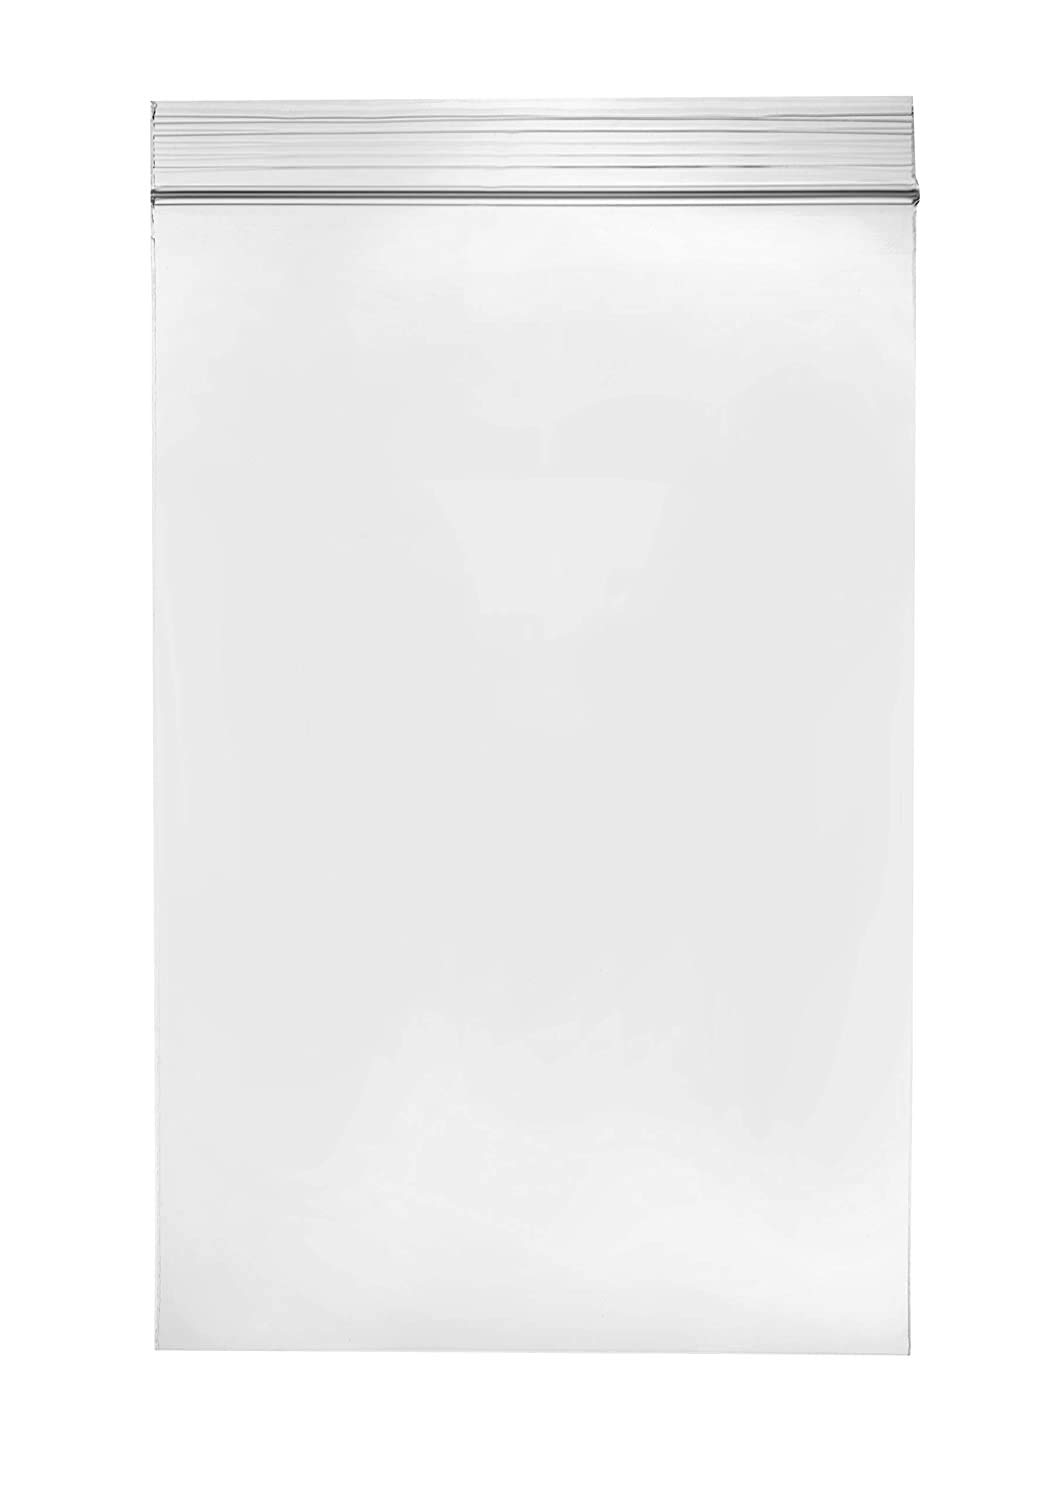 9 x 12 inches, 2Mil Clear Reclosable Zip Lock Bags, case of 1,000 GPI Brand